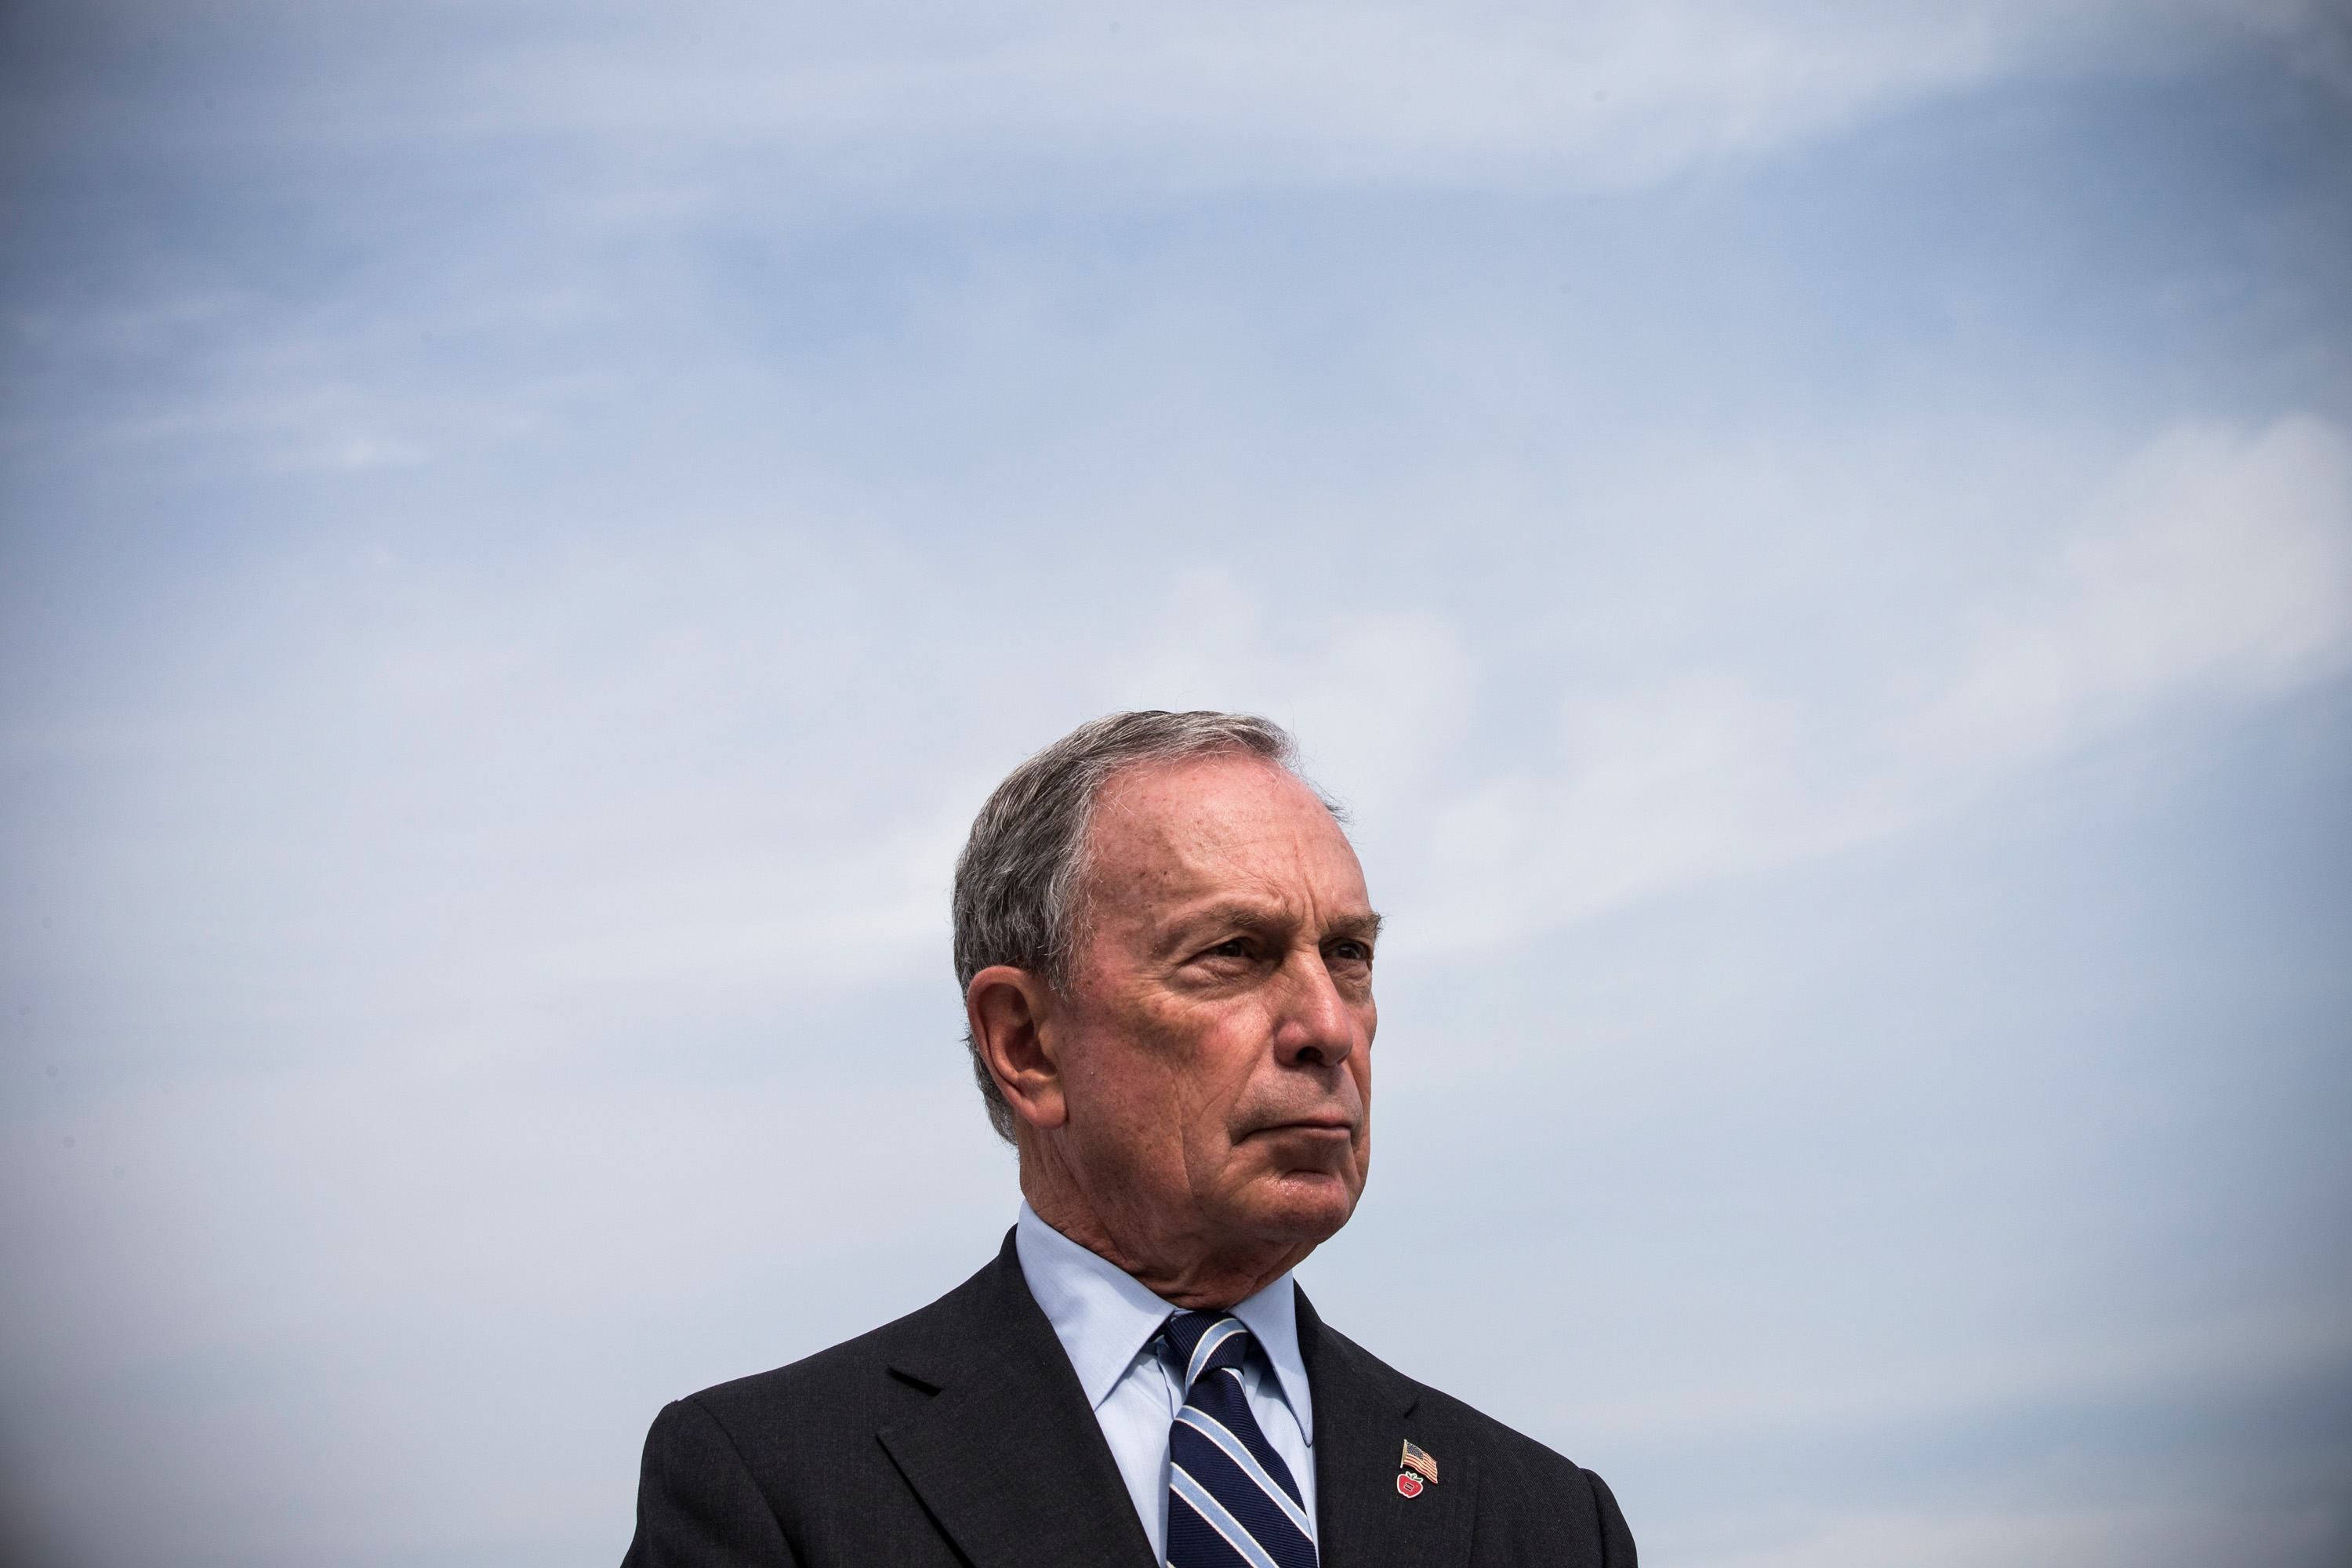 Former New York City Mayor Michael Bloomberg unveils a Hurricane Sandy Recovery Report at a press conference with U.S. Secretary for Housing and Urban Development Shaun Donovan (not seen) on Aug. 19, 2013 in the Brooklyn Borough of New York City.